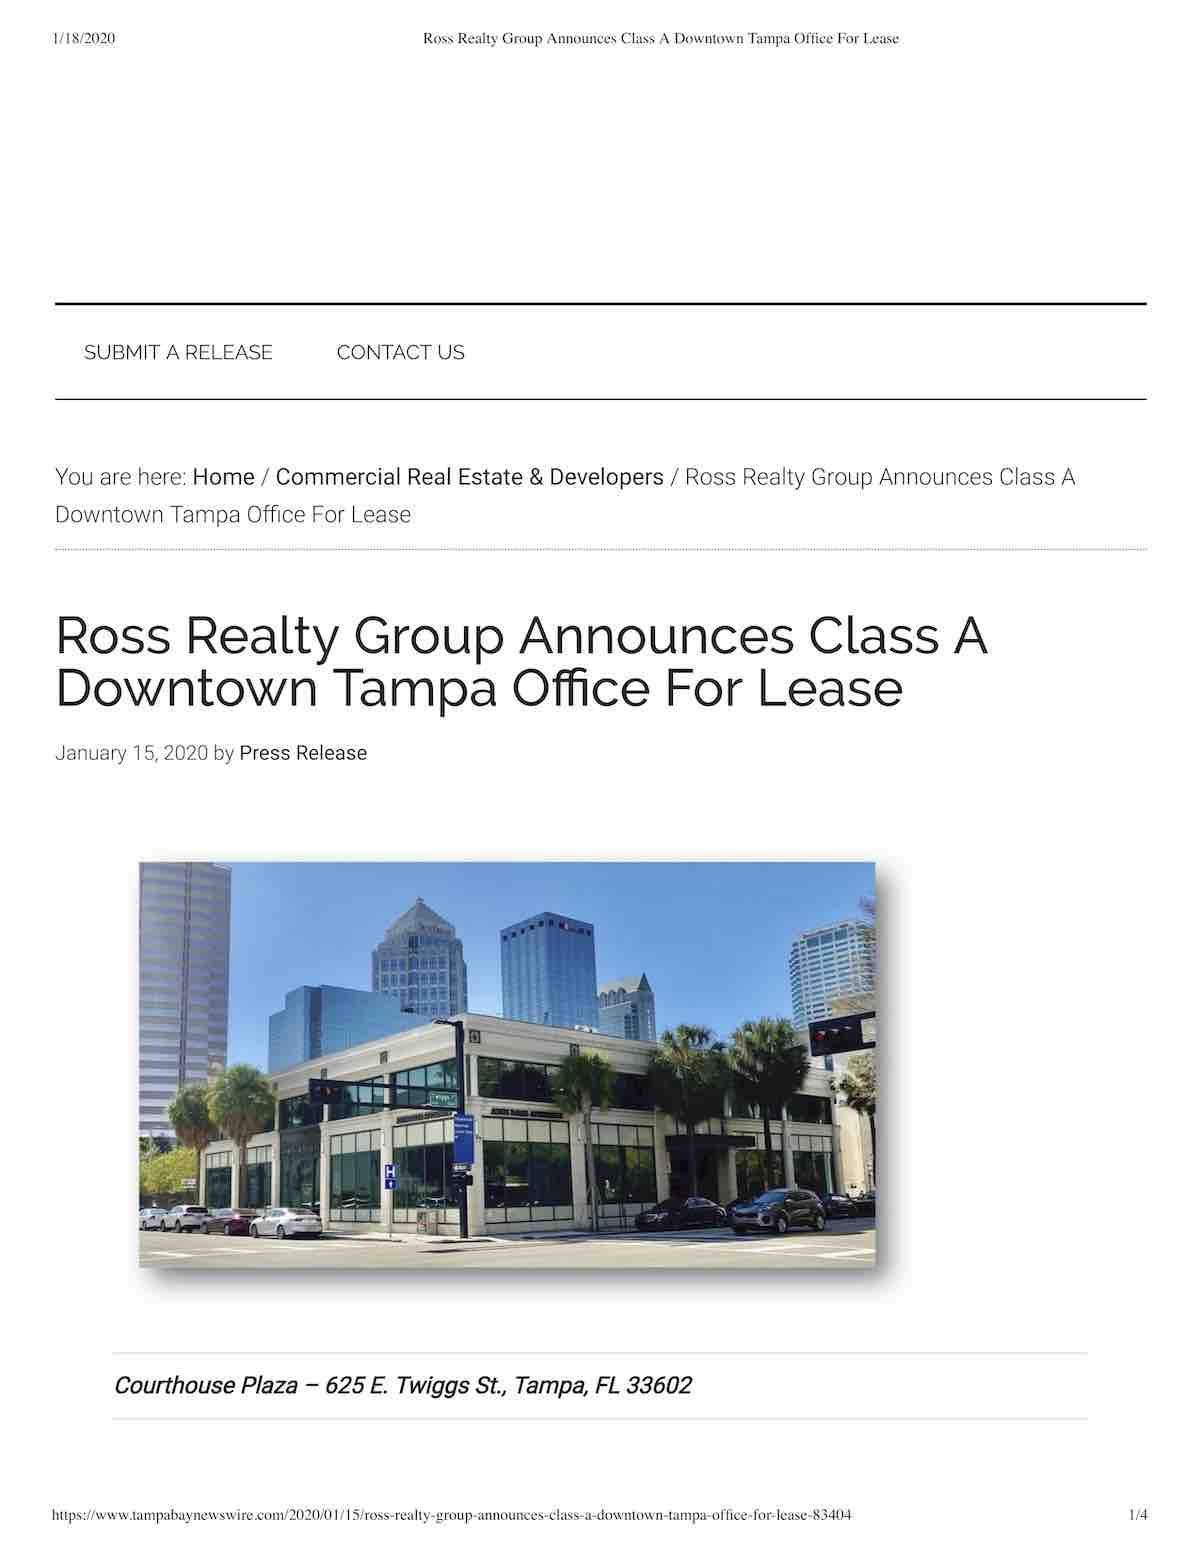 Tampa Commercial Real Estate - PR-20200115-Ross Realty Group Announces Class A Downtown Tampa Office For Lease-p1